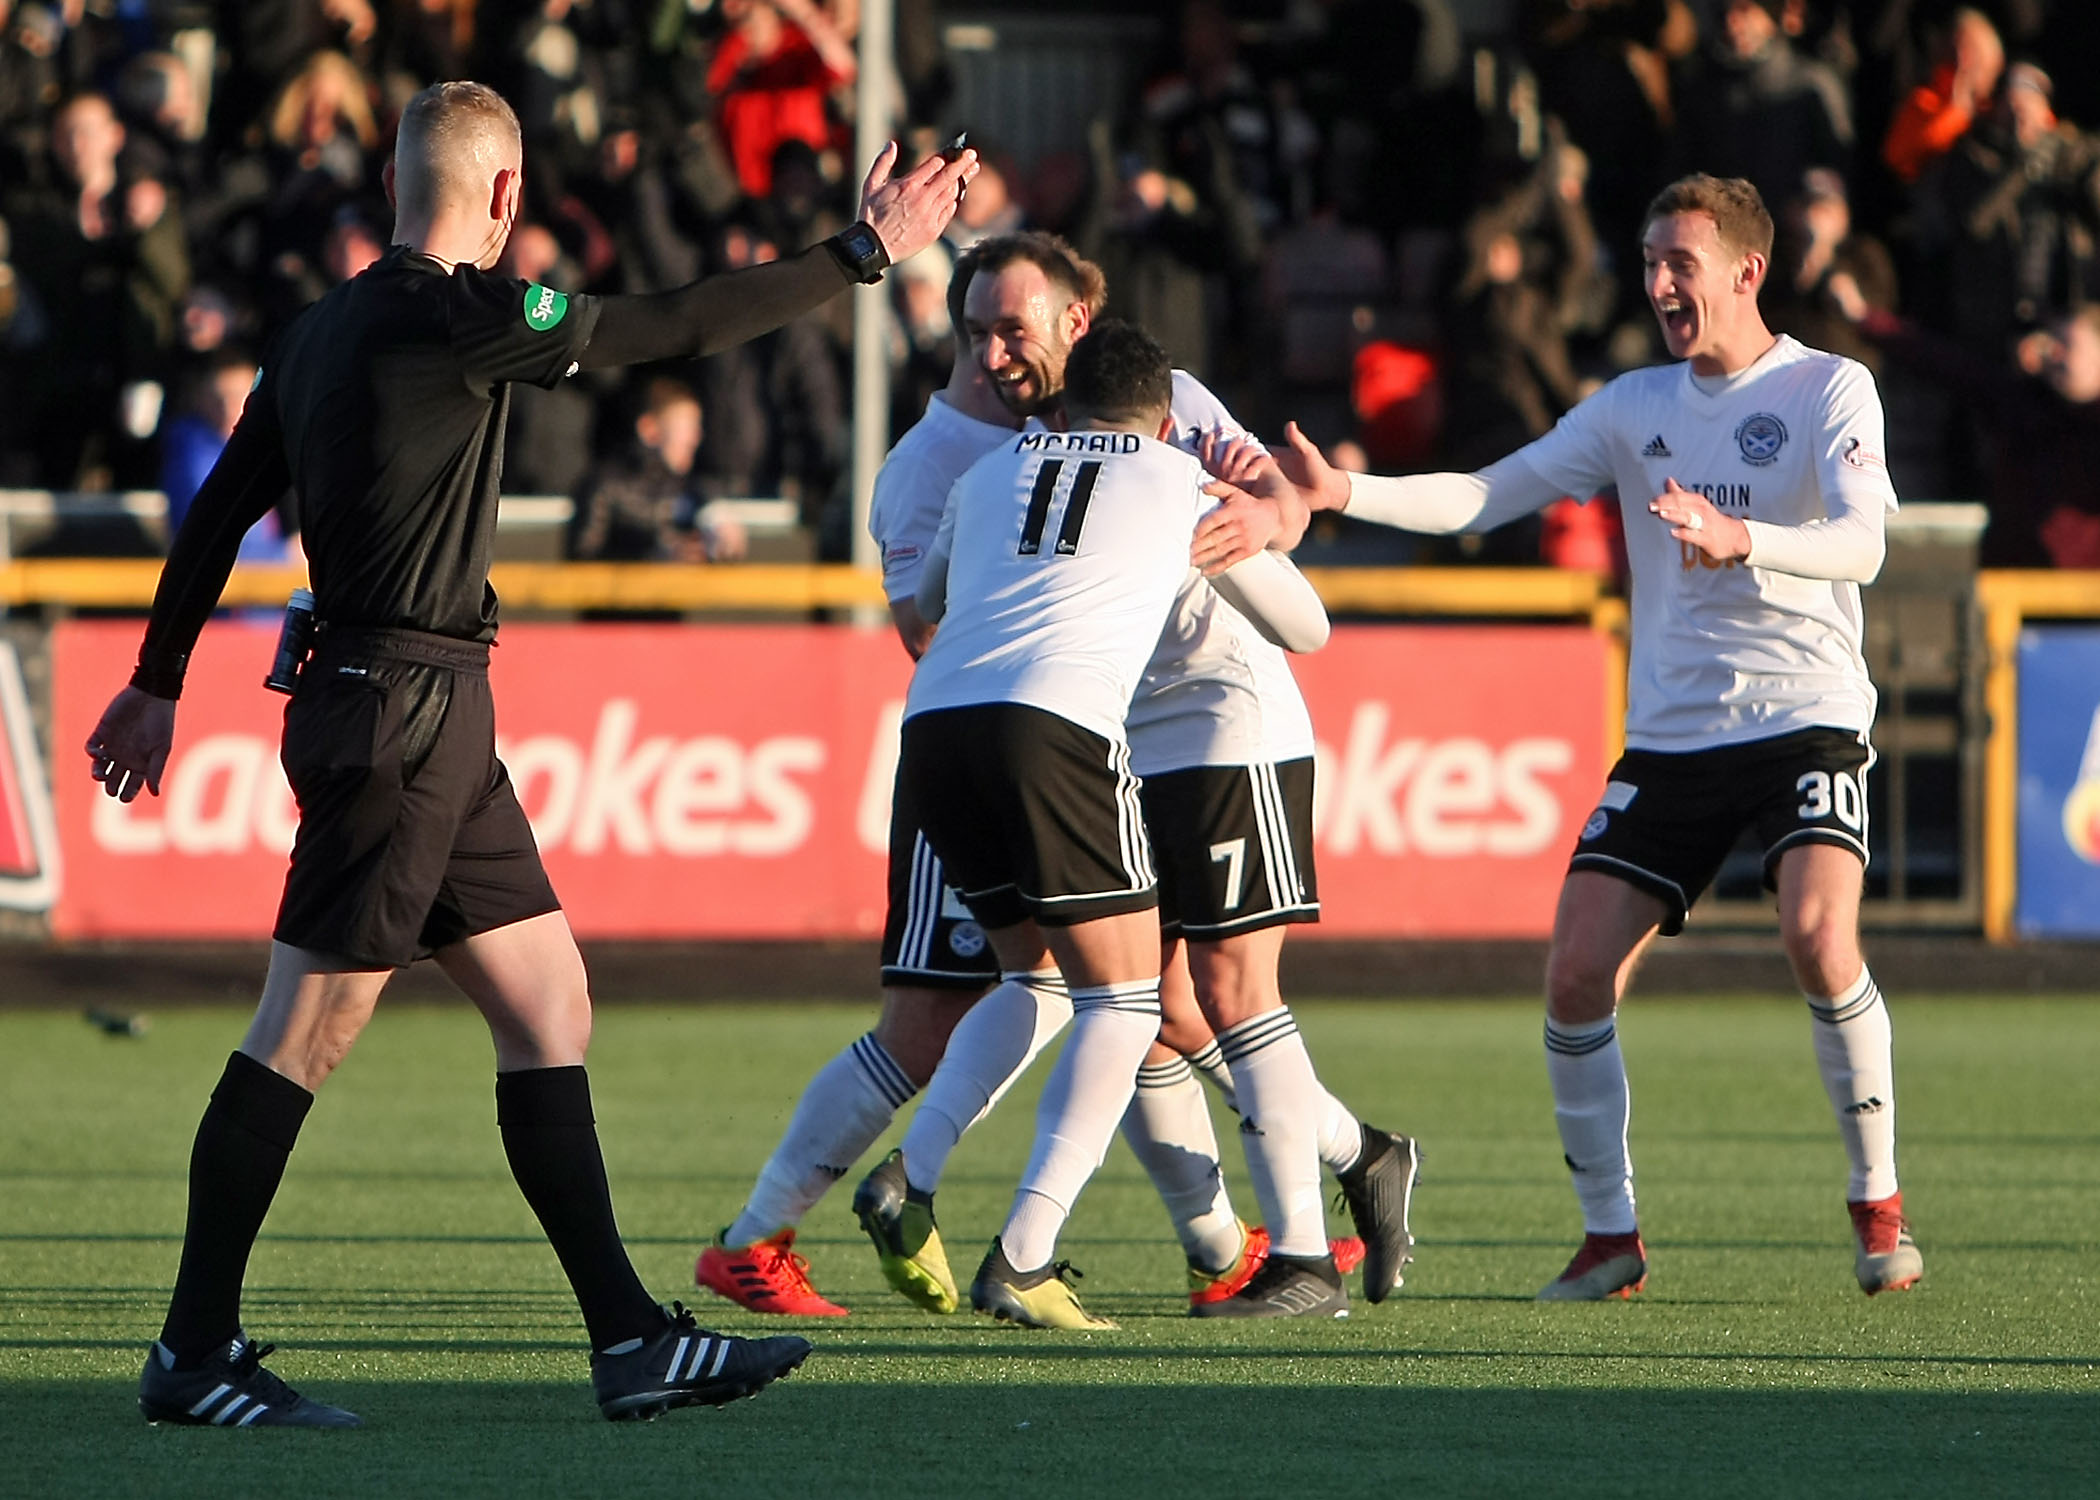 DADDY COOL: Michael Moffat celebrates with team-mates after opening the scoring for Ayr United.